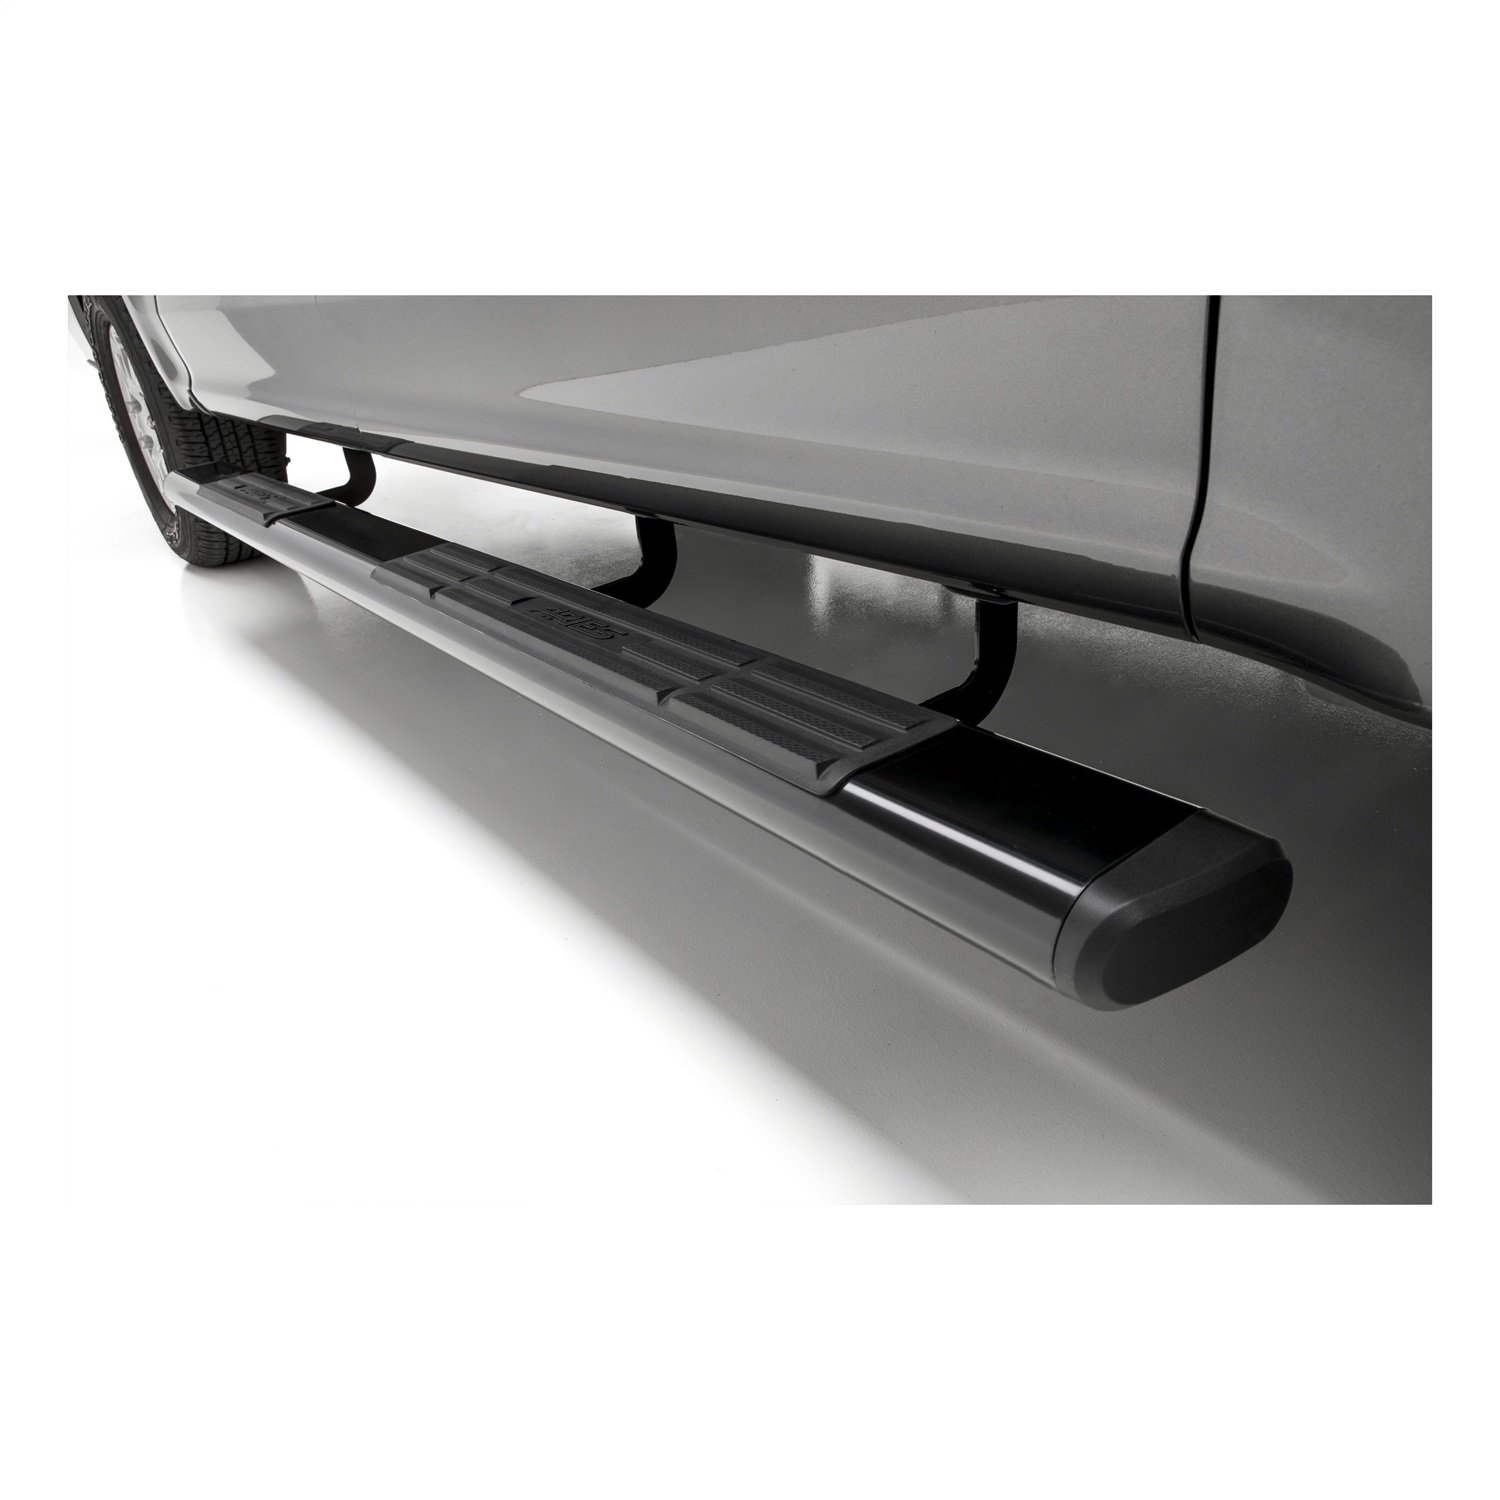 ARIES B2891 91-Inch Oval Black Aluminum Nerf Bars Brackets Sold Separately